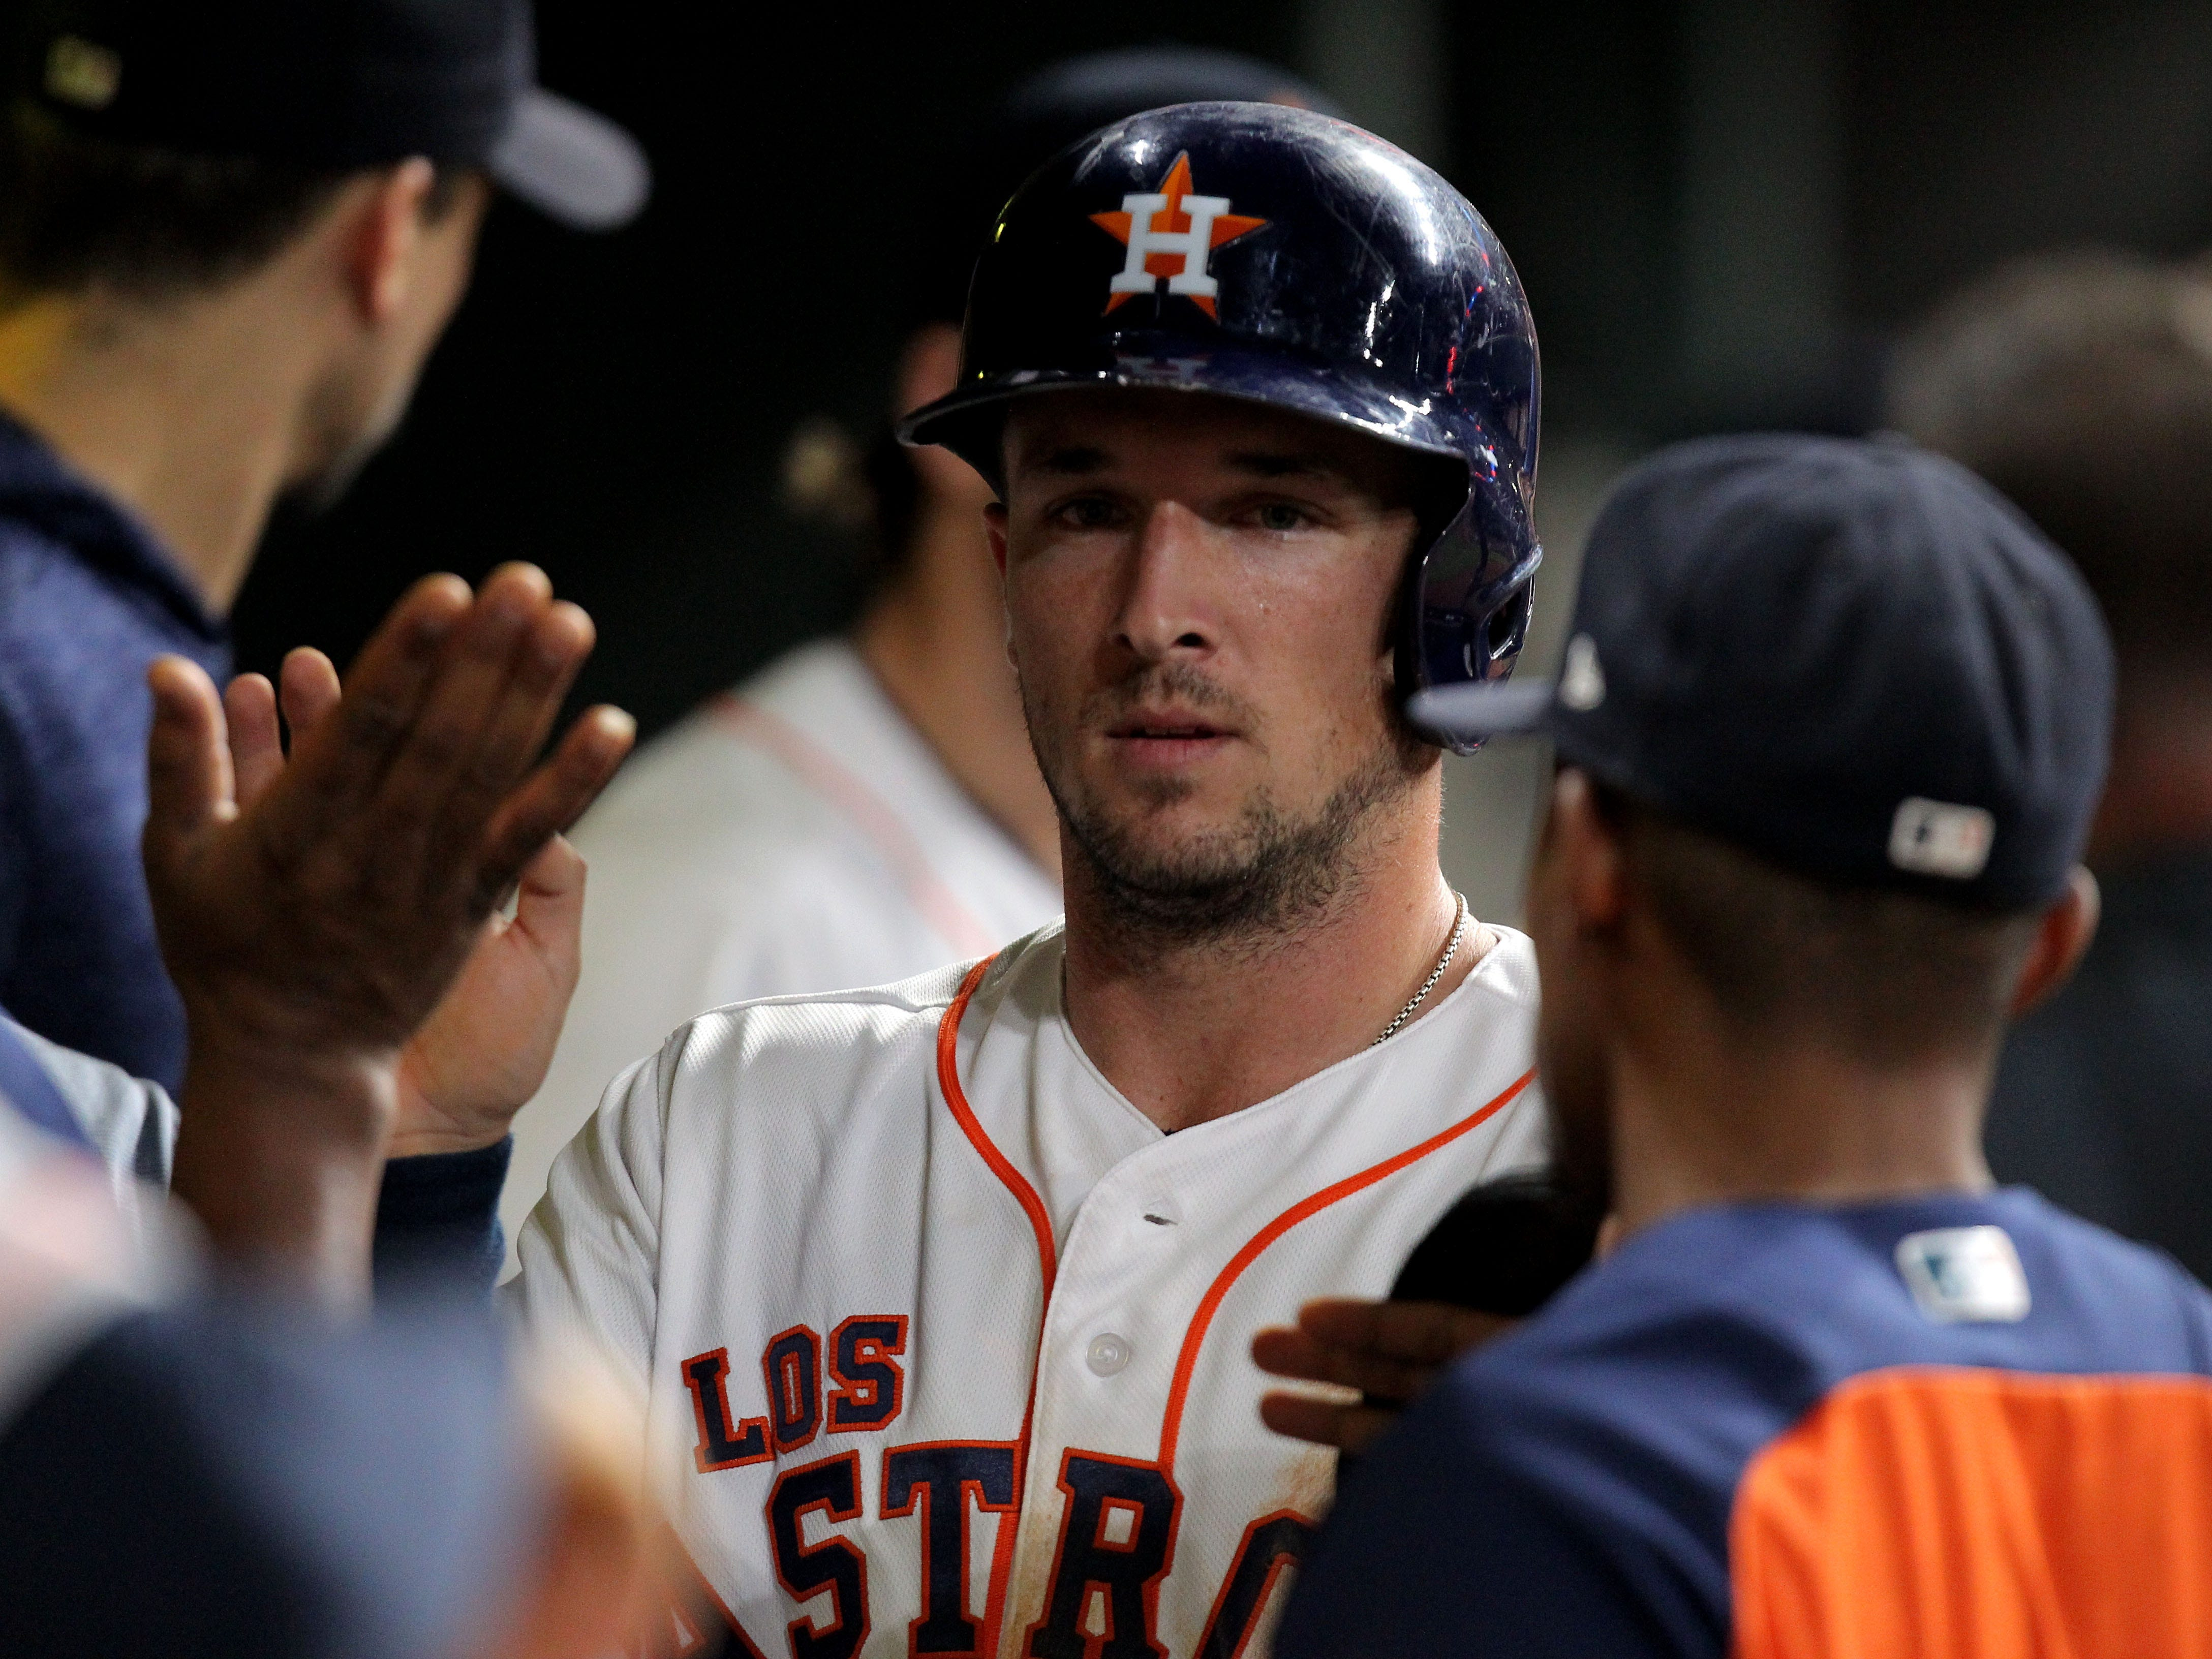 Sep 15, 2018; Houston, TX, USA; Houston Astros third baseman Alex Bregman (2) is greeted in the dugout after scoring a run against the Arizona Diamondbacks during the sixth inning at Minute Maid Park. Mandatory Credit: Erik Williams-USA TODAY Sports